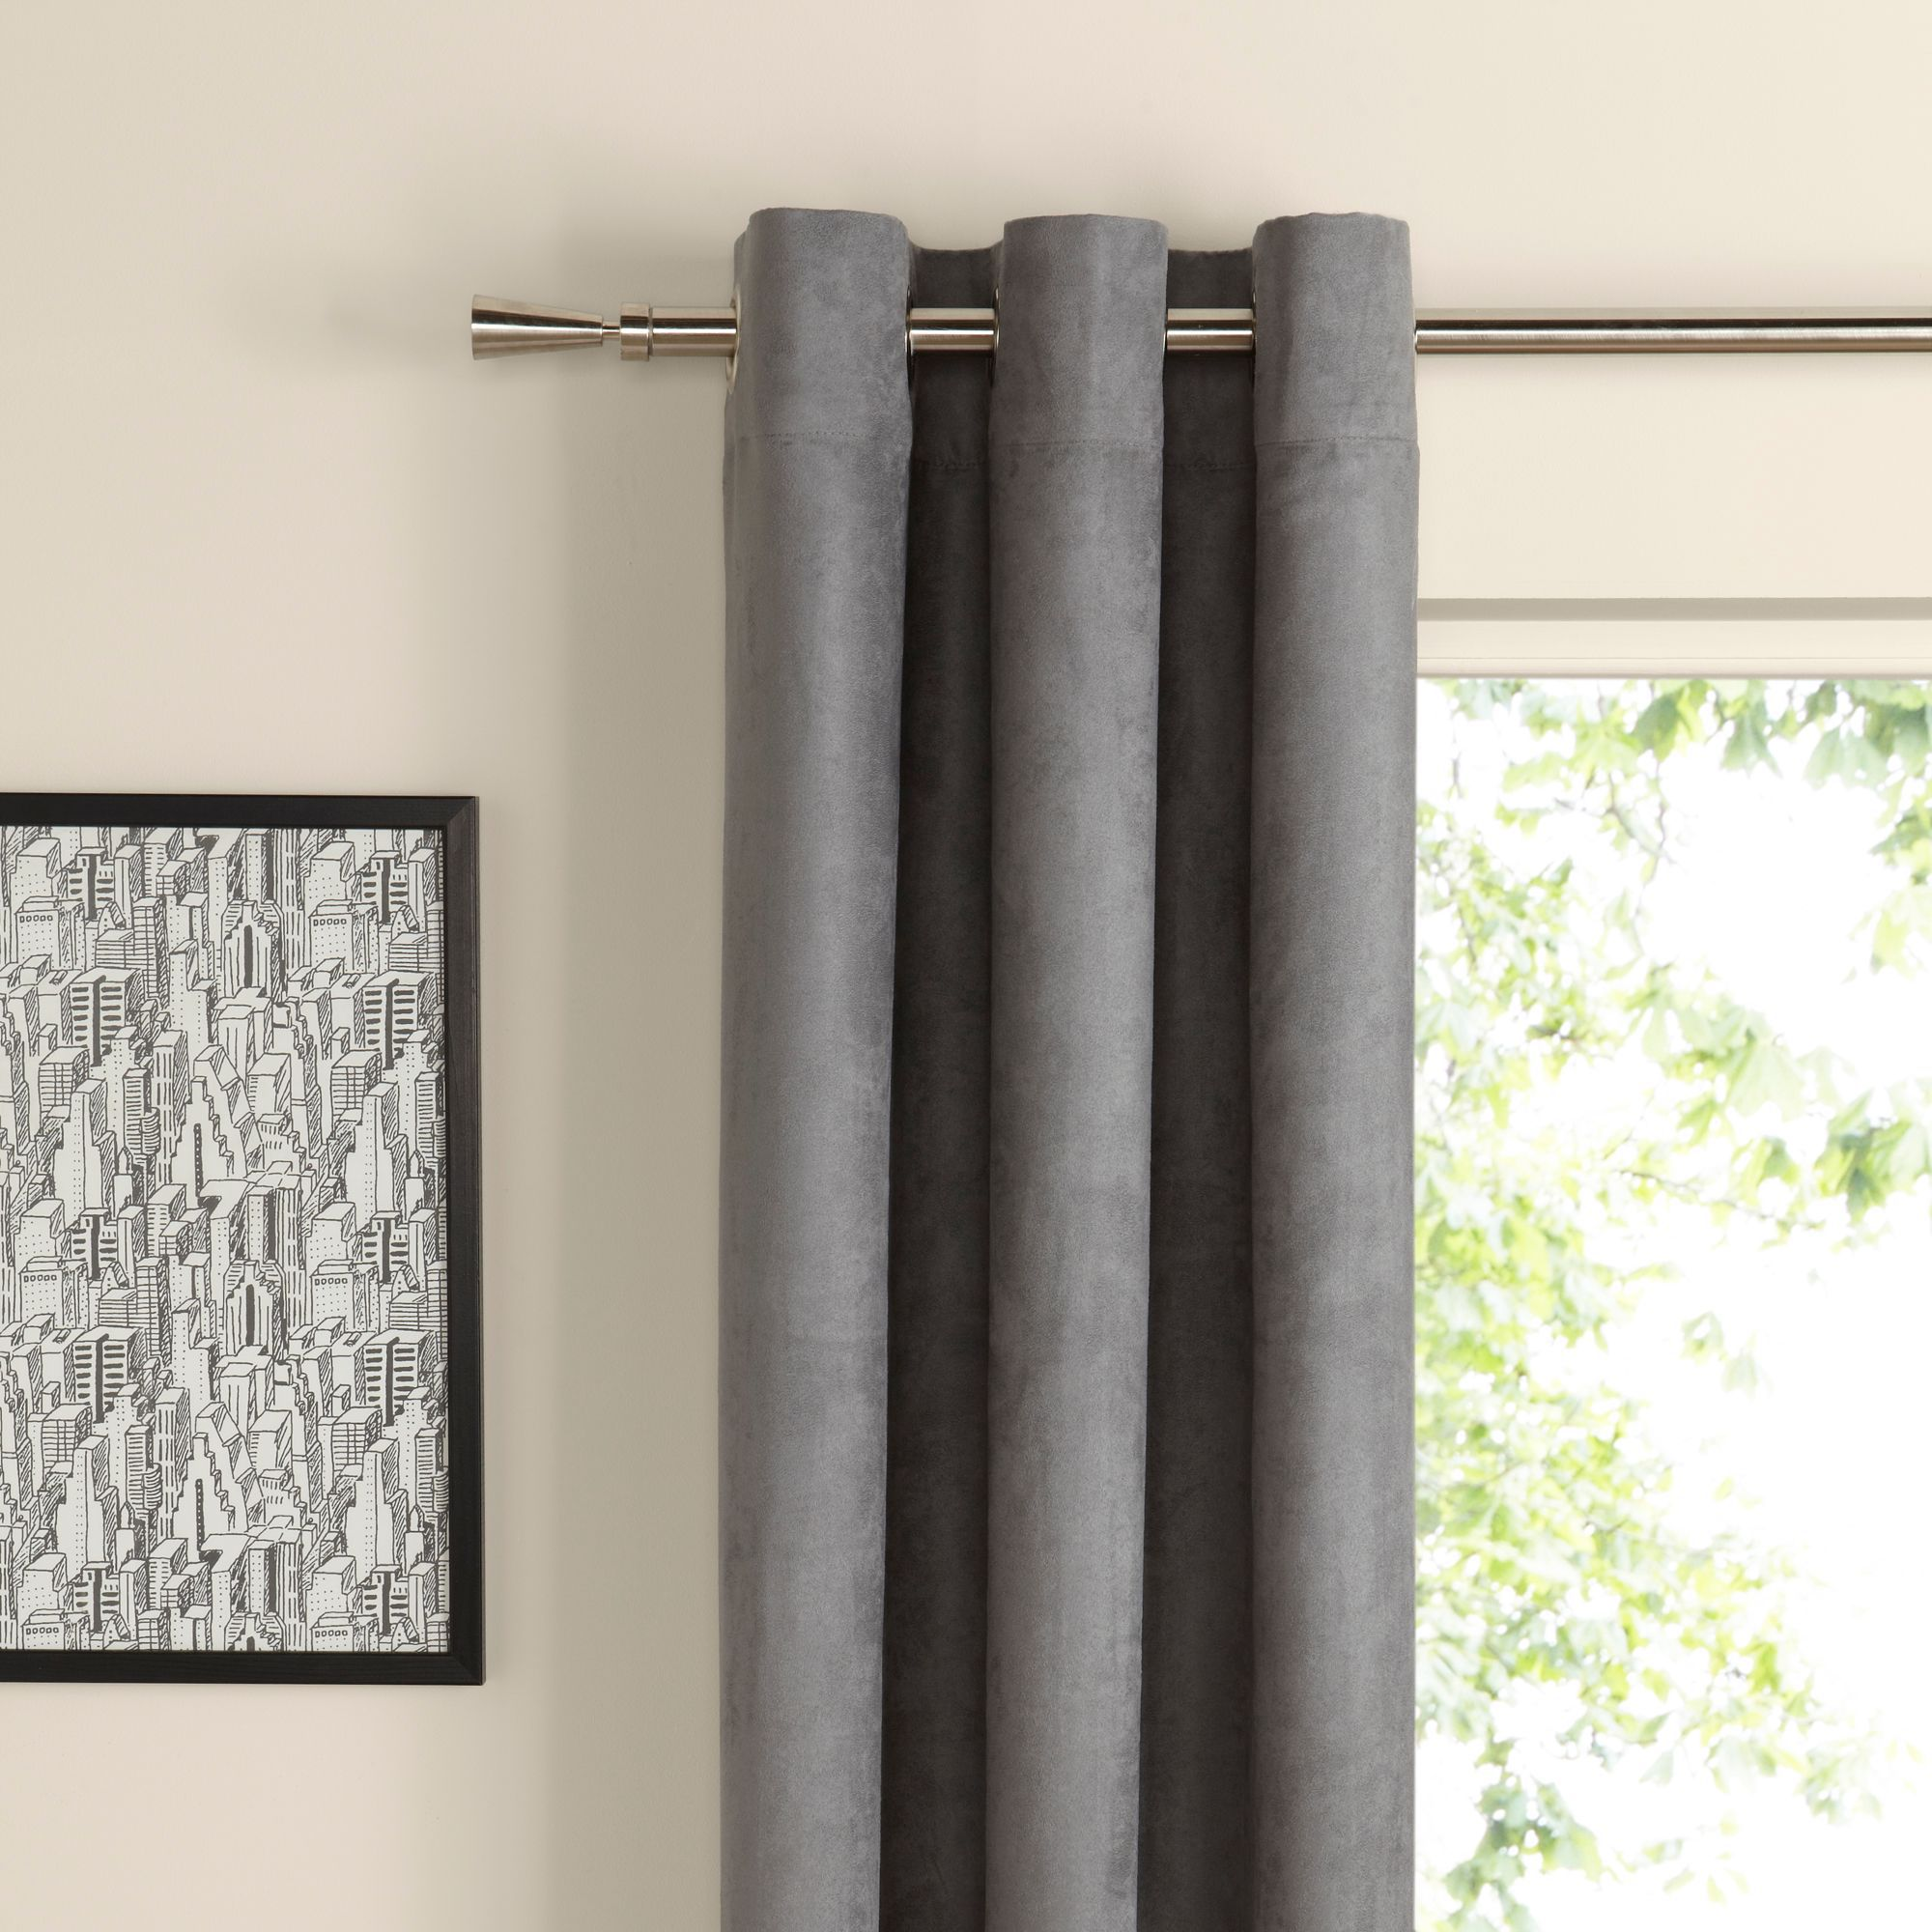 Suedine Concrete Plain Woven Eyelet Curtains (W)228 cm (L)228 cm |  Departments | DIY at B&Q